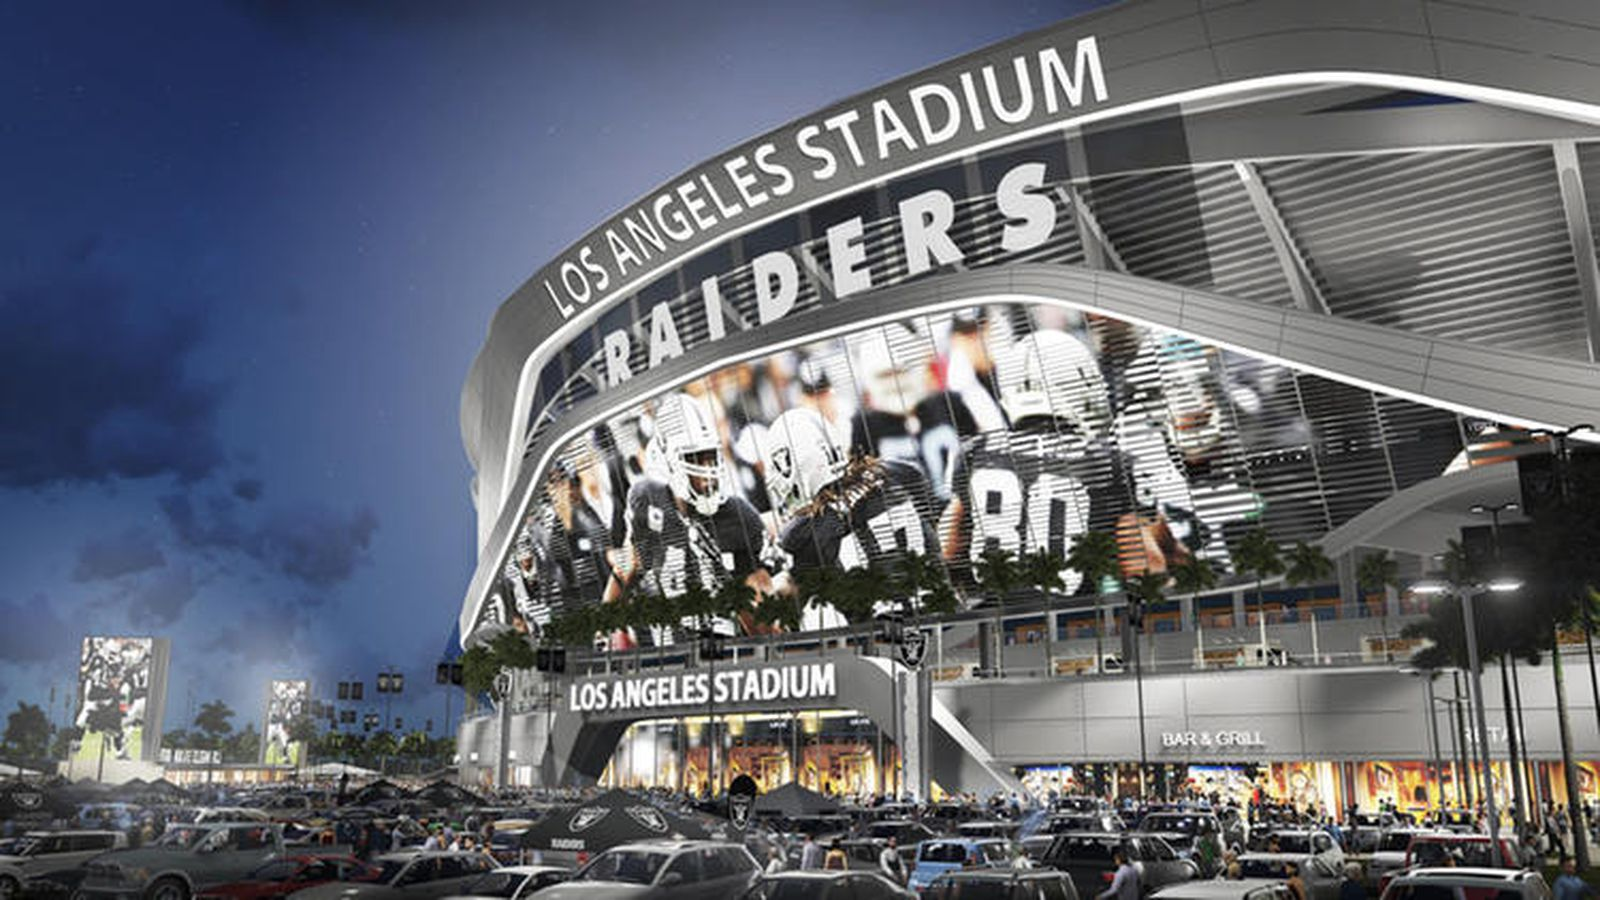 Raiders Proposed New Stadium Could Be Next Up For Super